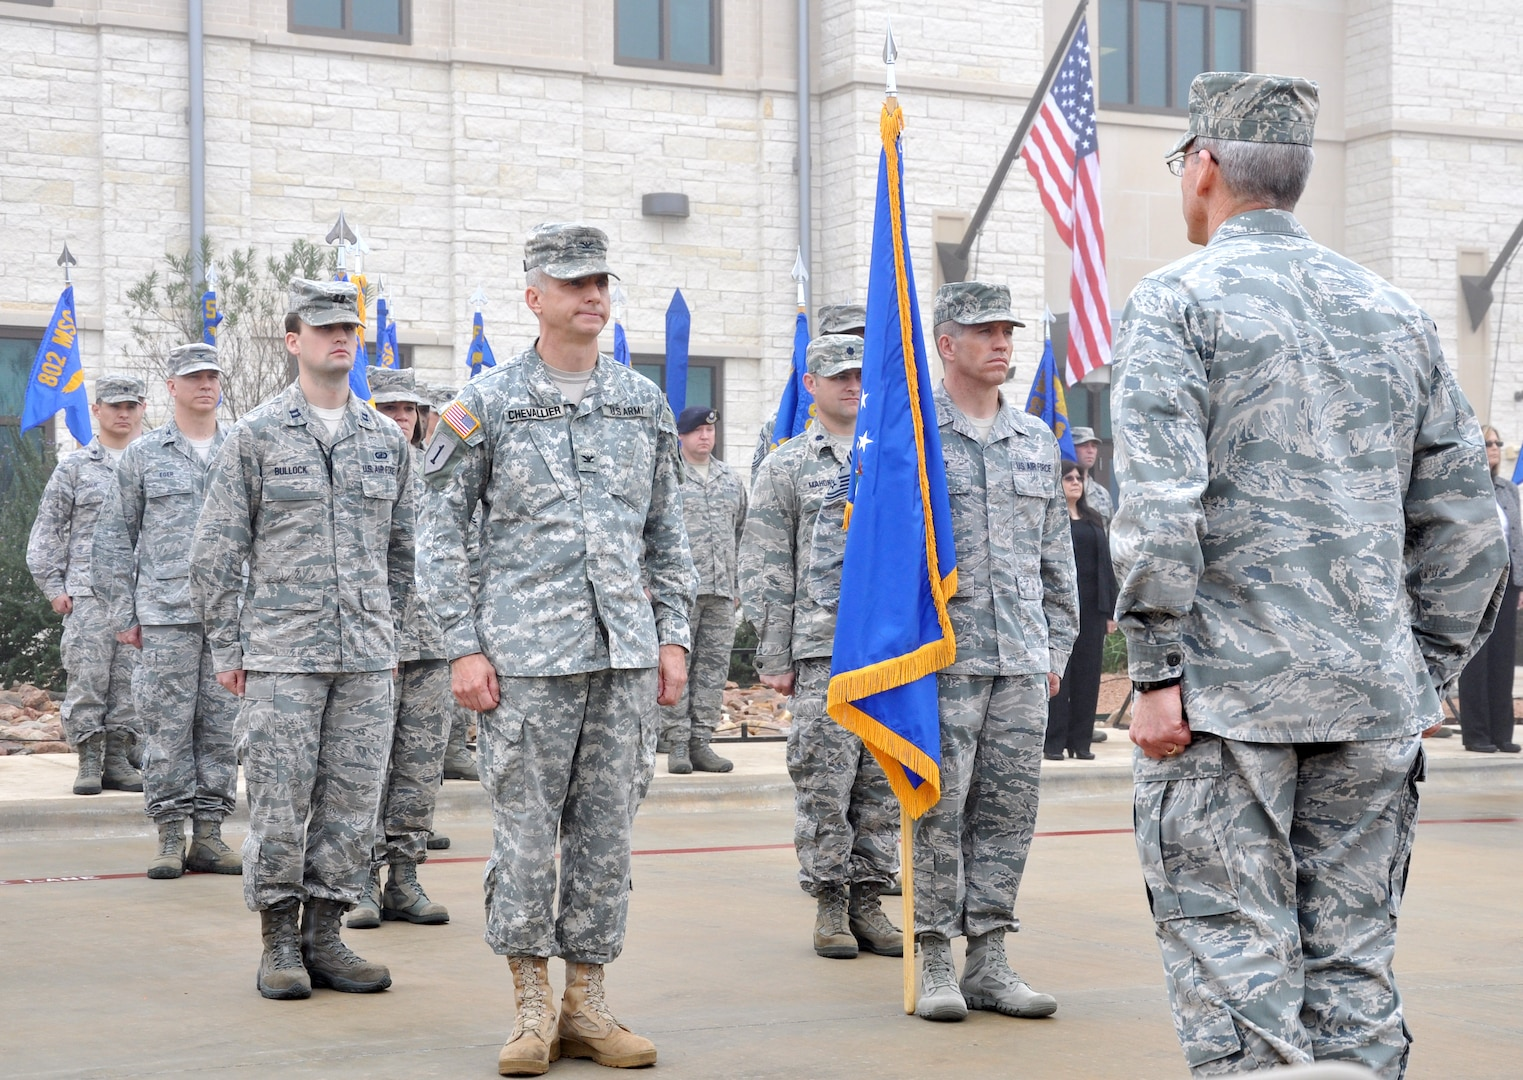 (From right) Brig. Gen. Bob LaBrutta, Joint Base San Antonio and 502nd Air Base Wing commander, receives the wing's colors from Chief Master Sgt. Alexander Perry,  JBSA/502nd ABW command chief master sergeant; and Army Col. Jim Chevallier, JBSA/502nd ABW vice commander during the 502nd Air Base Wing transformation ceremony at Joint Base San Antonio-Fort Sam Houston Dec. 4. (U.S. Air Force photo by Steve Elliott)